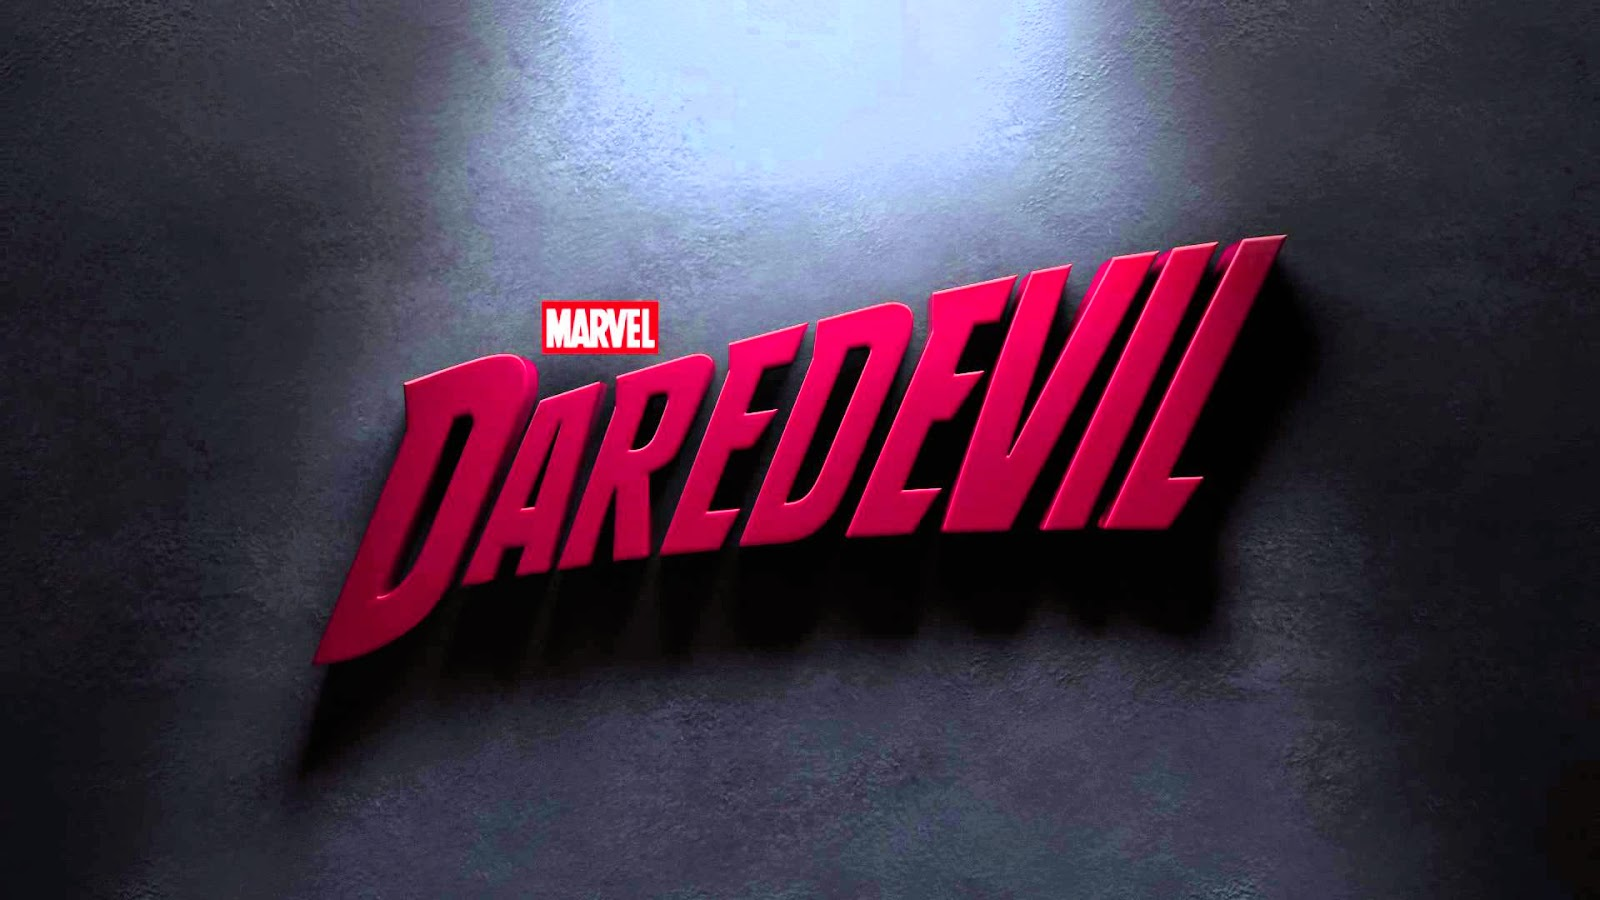 Netflix Daredevil series title card logo by Marvel